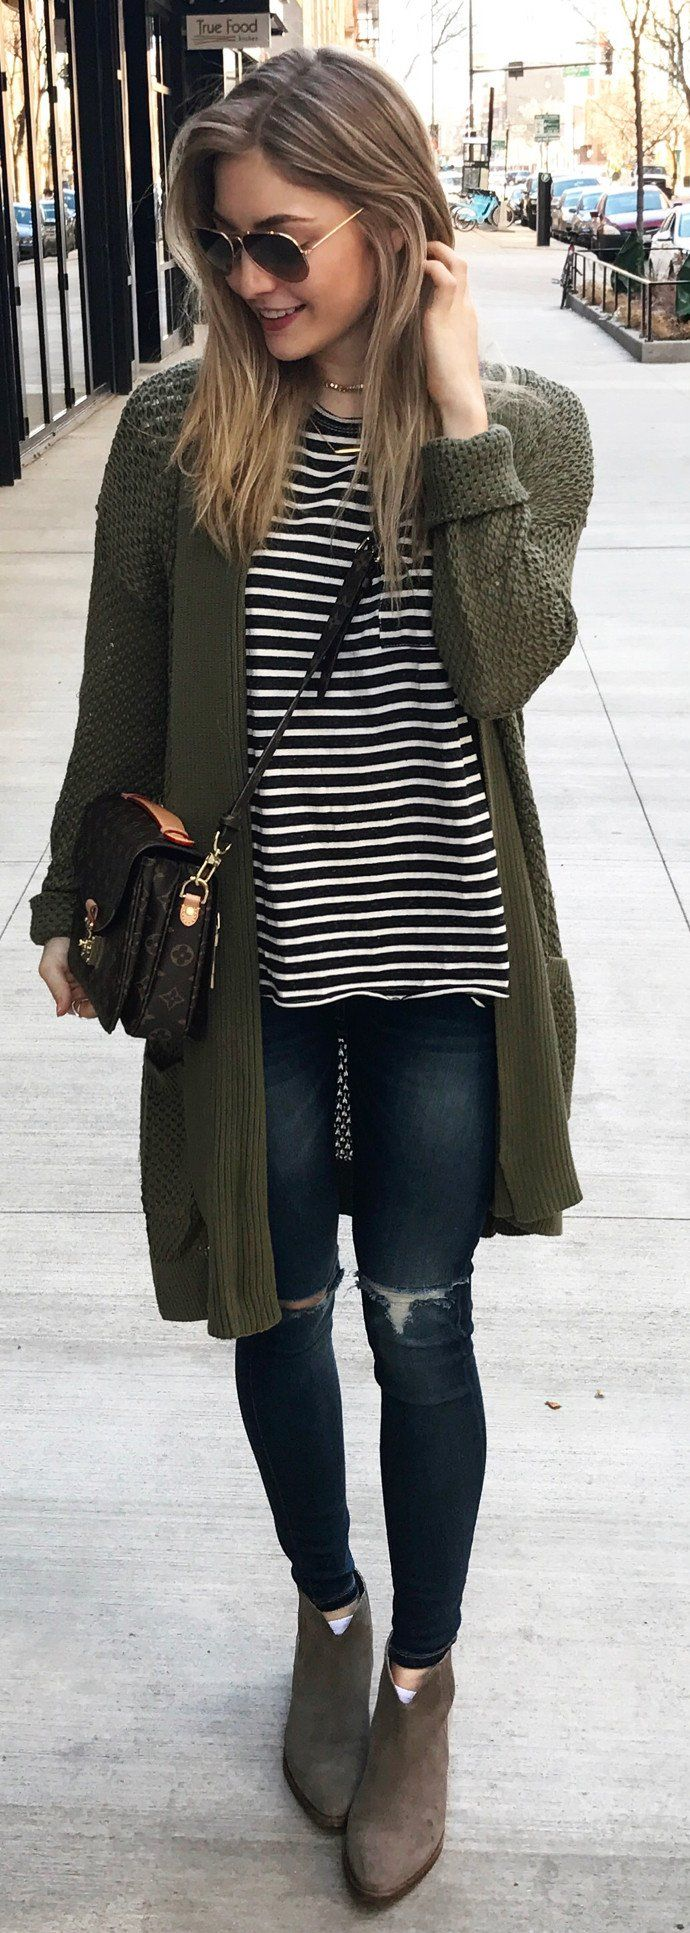 Spring Outfits / Green Cardigan / Black & White Striped Tee / Ripped Skinny Jeans / Dark Suede Booties